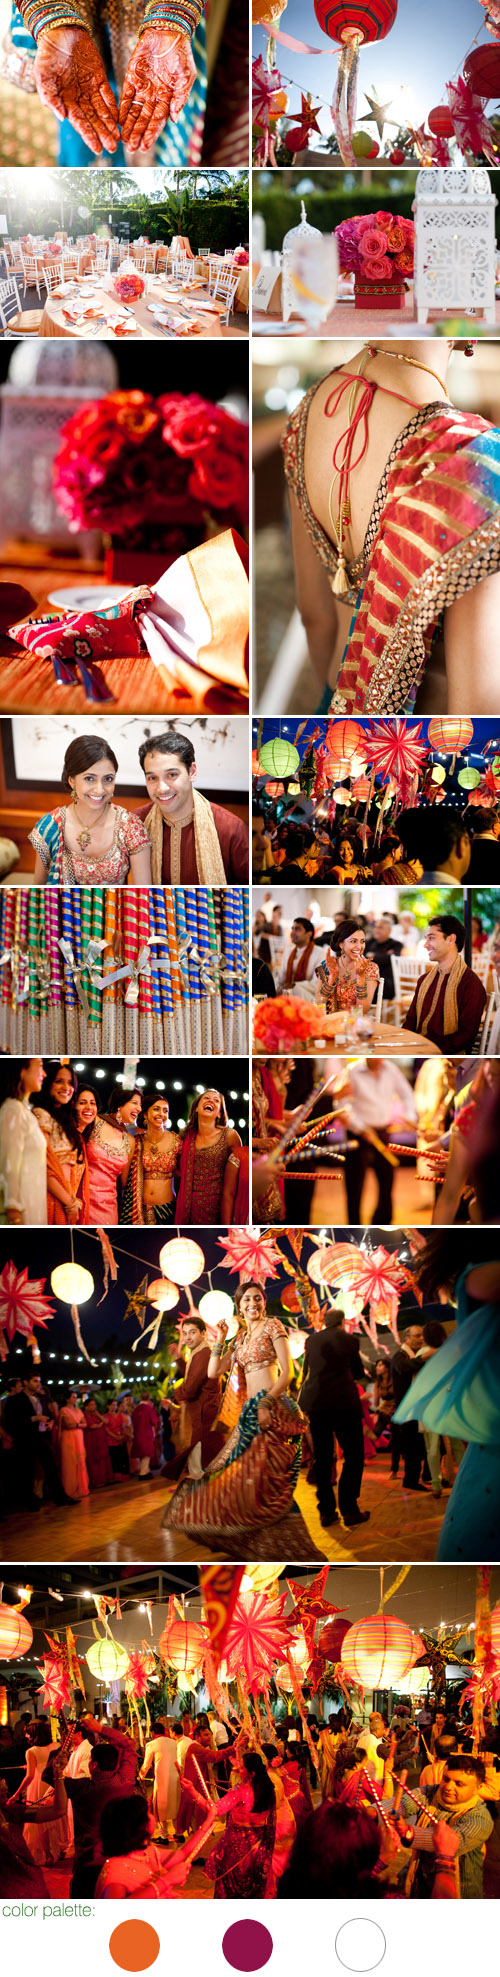 beautiful Indian real wedding at The Resort at Pelican Hill Newport Coast, California, coordinated by Details, Details, Photos by John and Joseph Photography